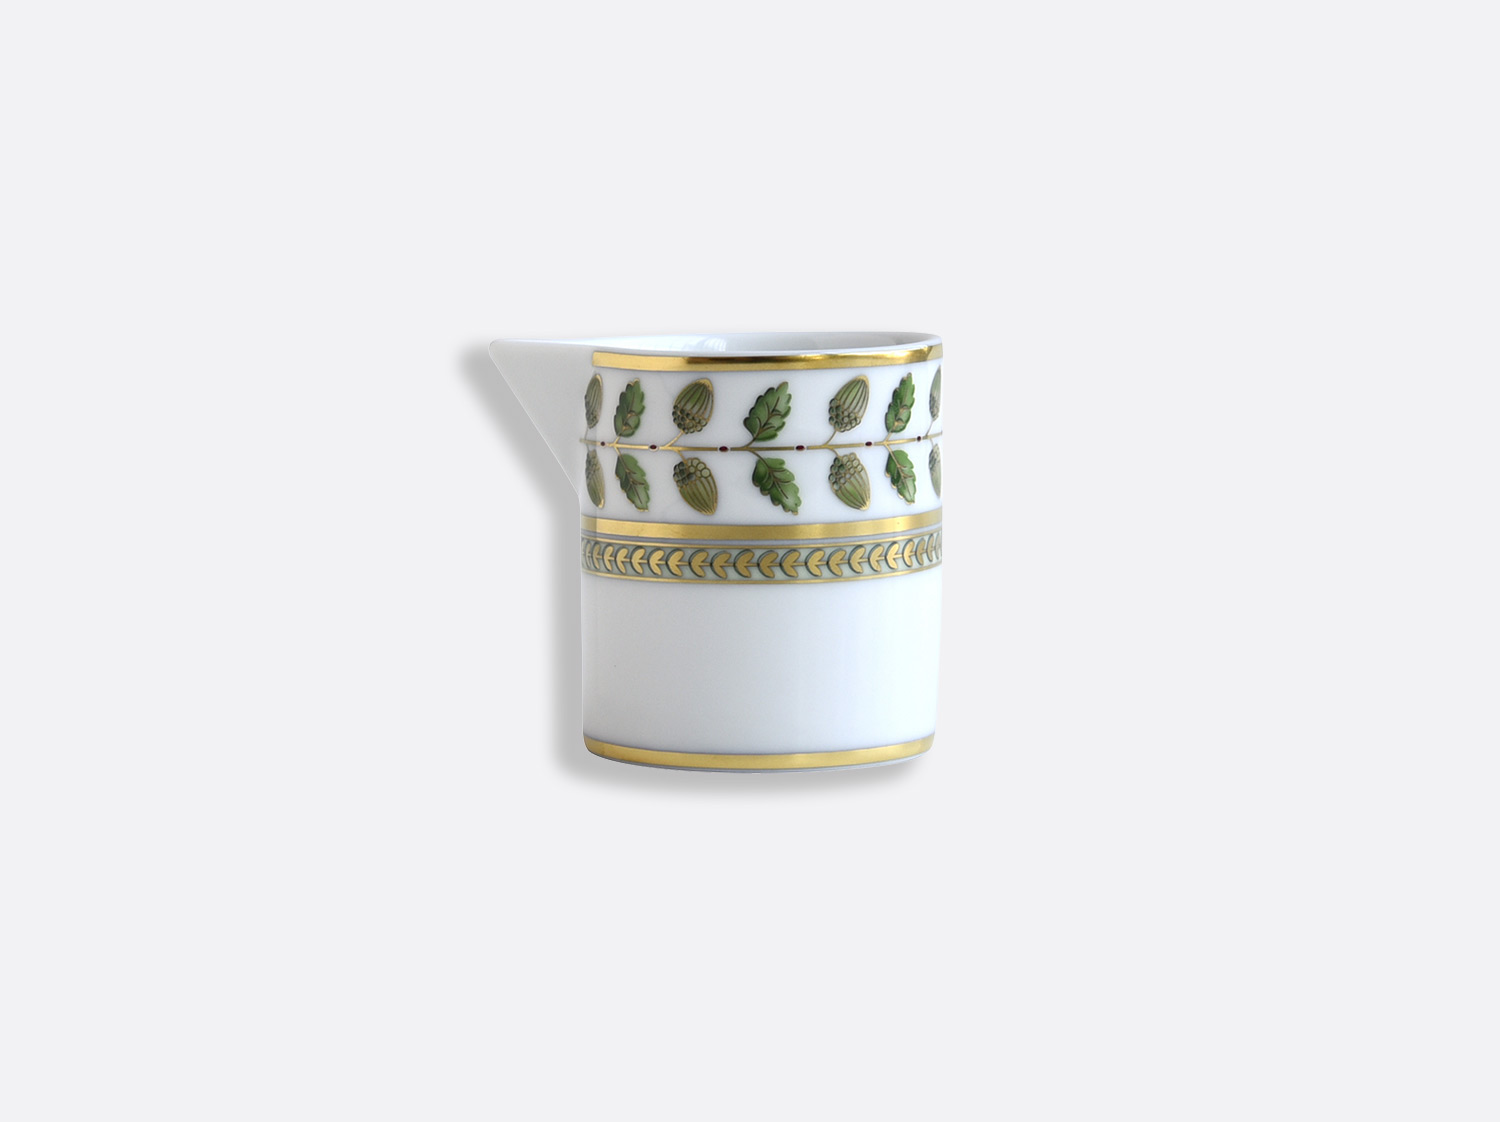 Crémier 8 cl en porcelaine de la collection Constance Bernardaud